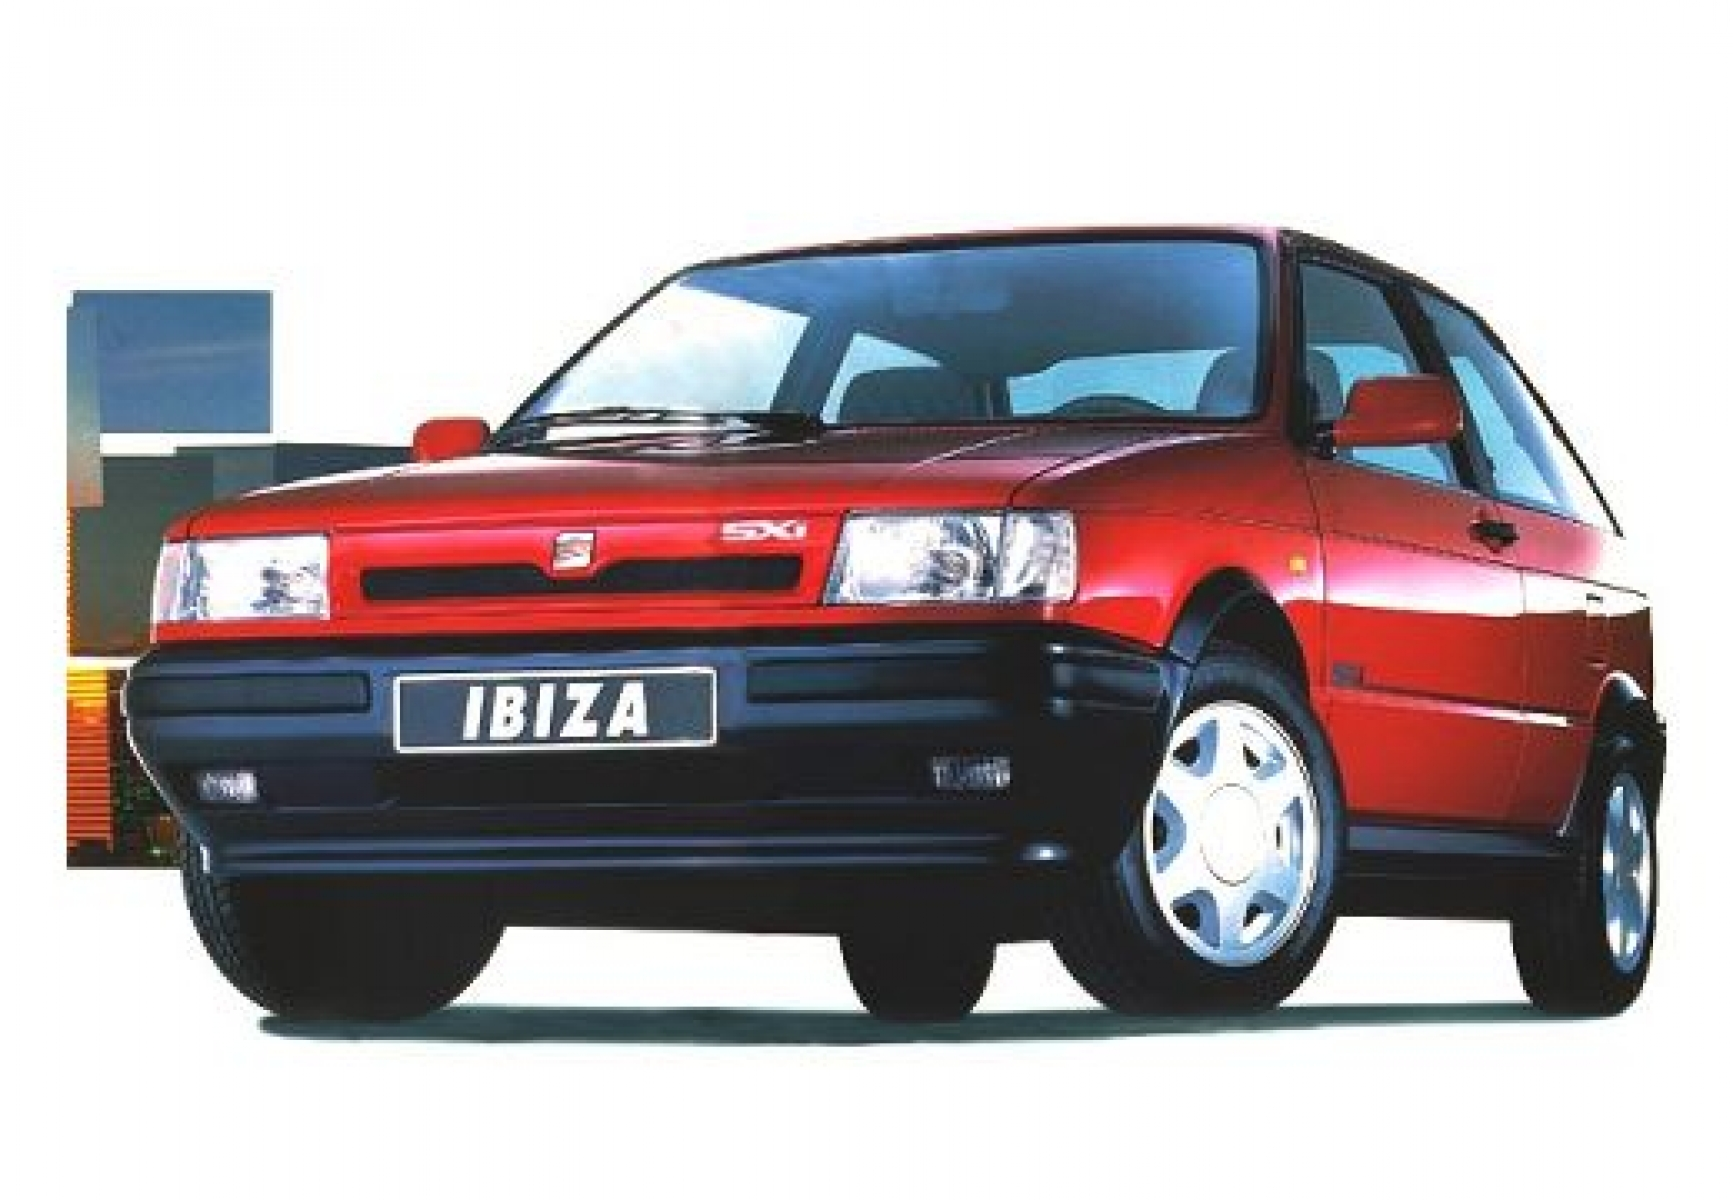 seat ibiza 1 5 1985 technical specifications interior and exterior photo. Black Bedroom Furniture Sets. Home Design Ideas